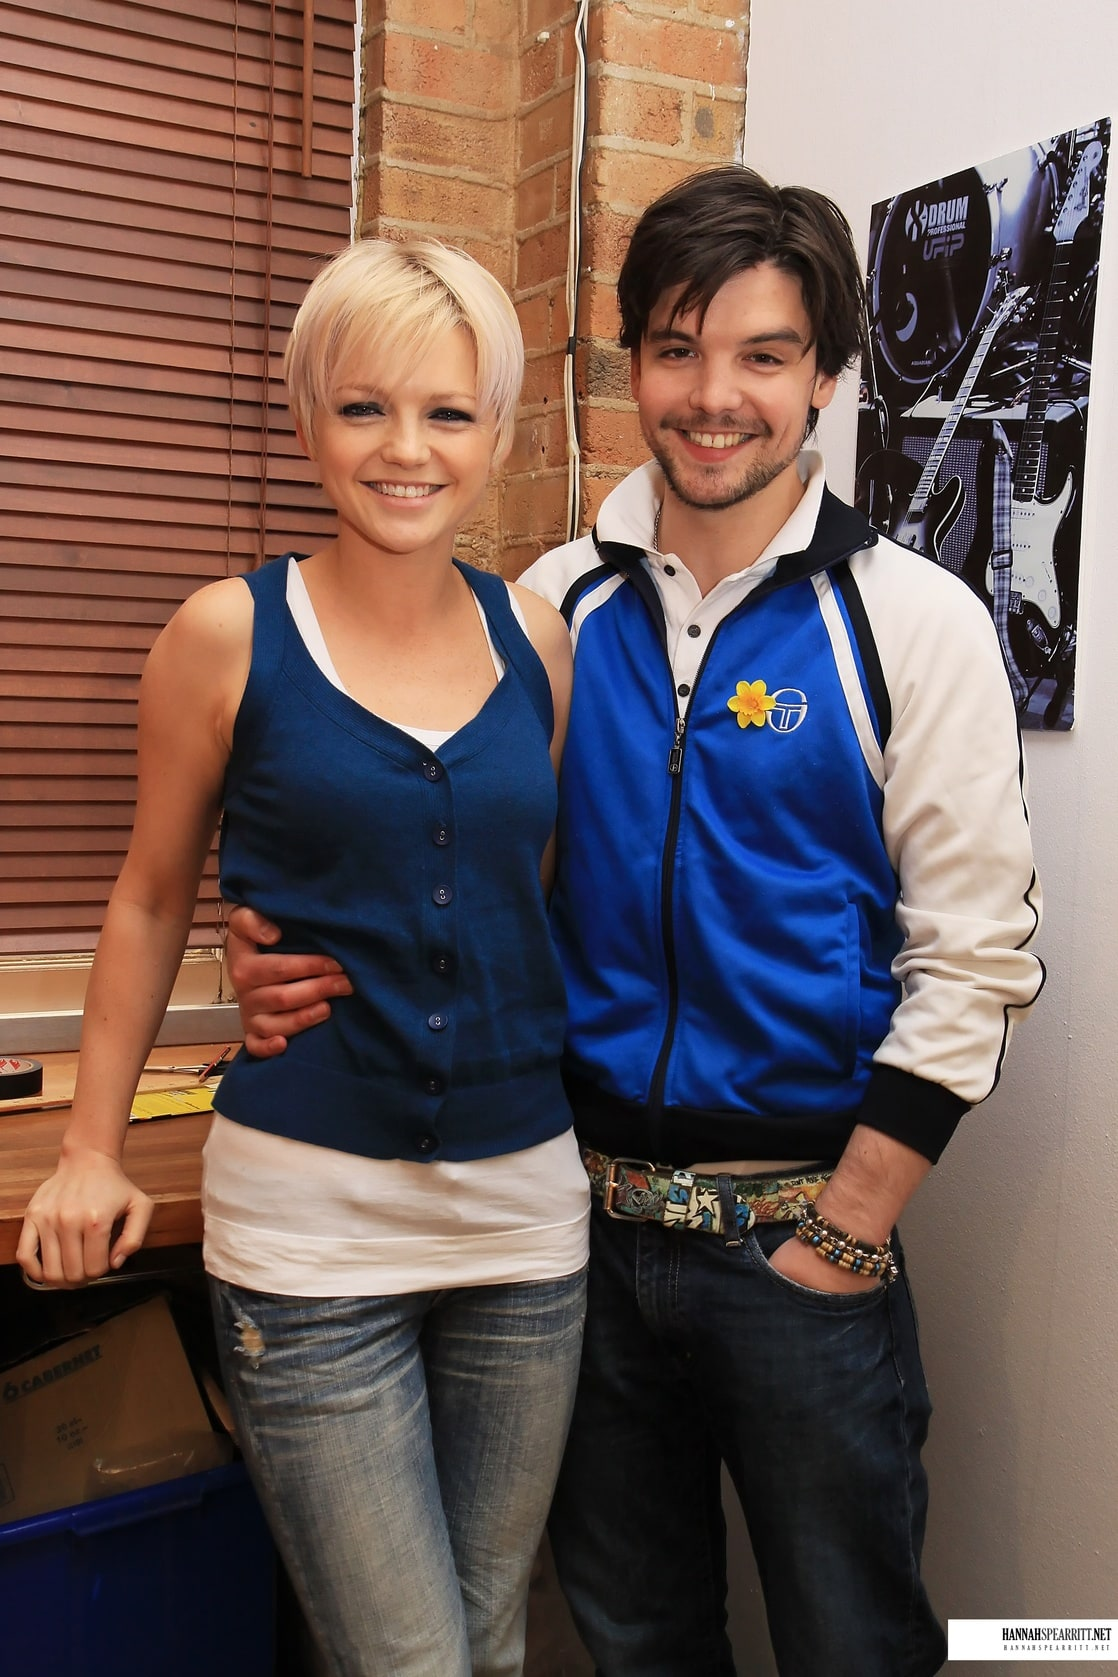 Consider, hannah spearritt jeans as can recommend